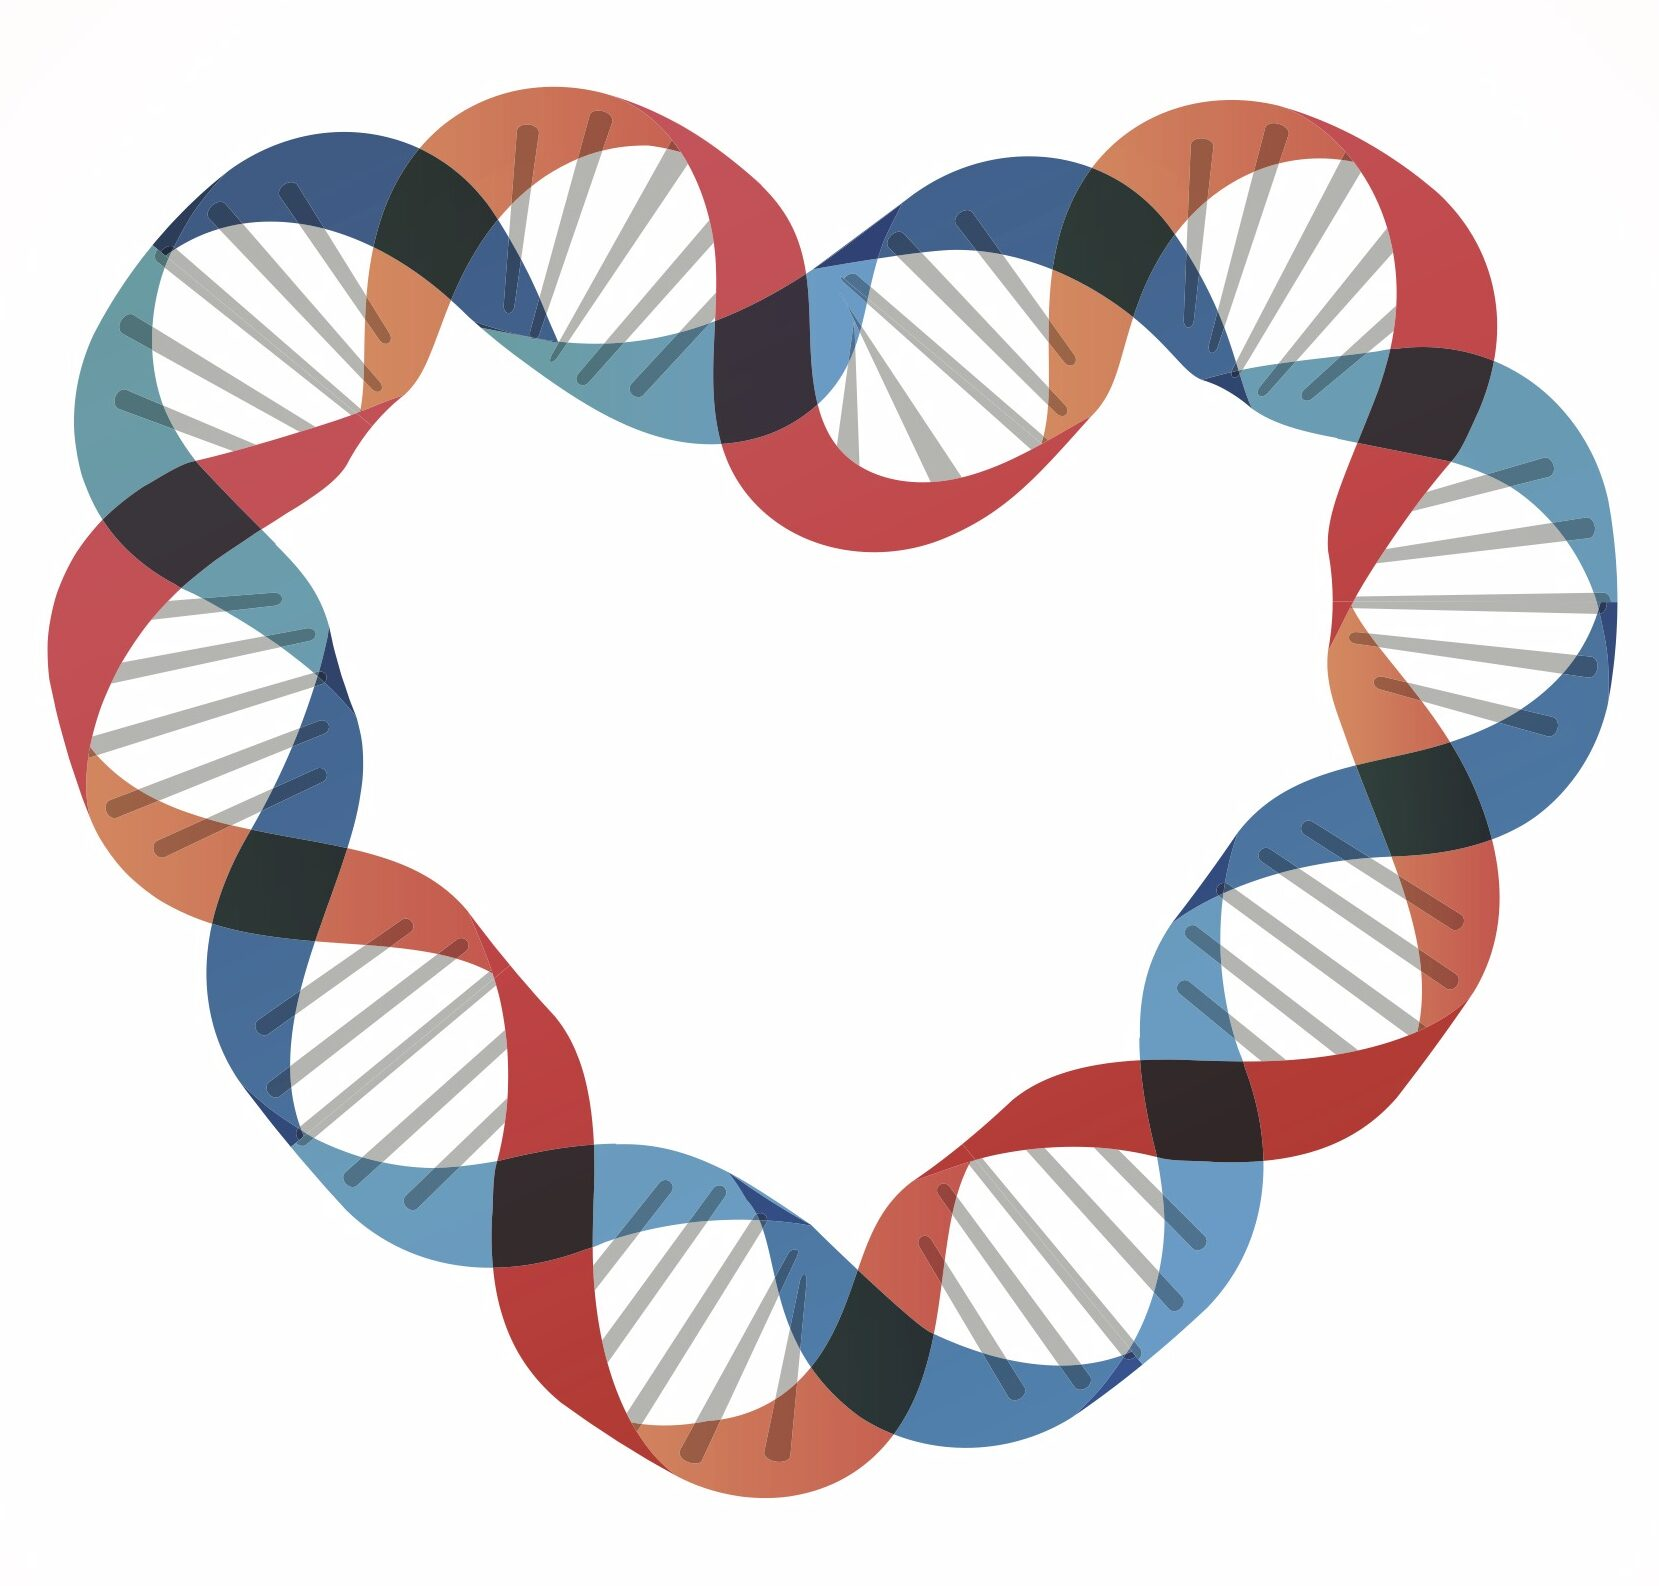 dna strand in the shape of a heart